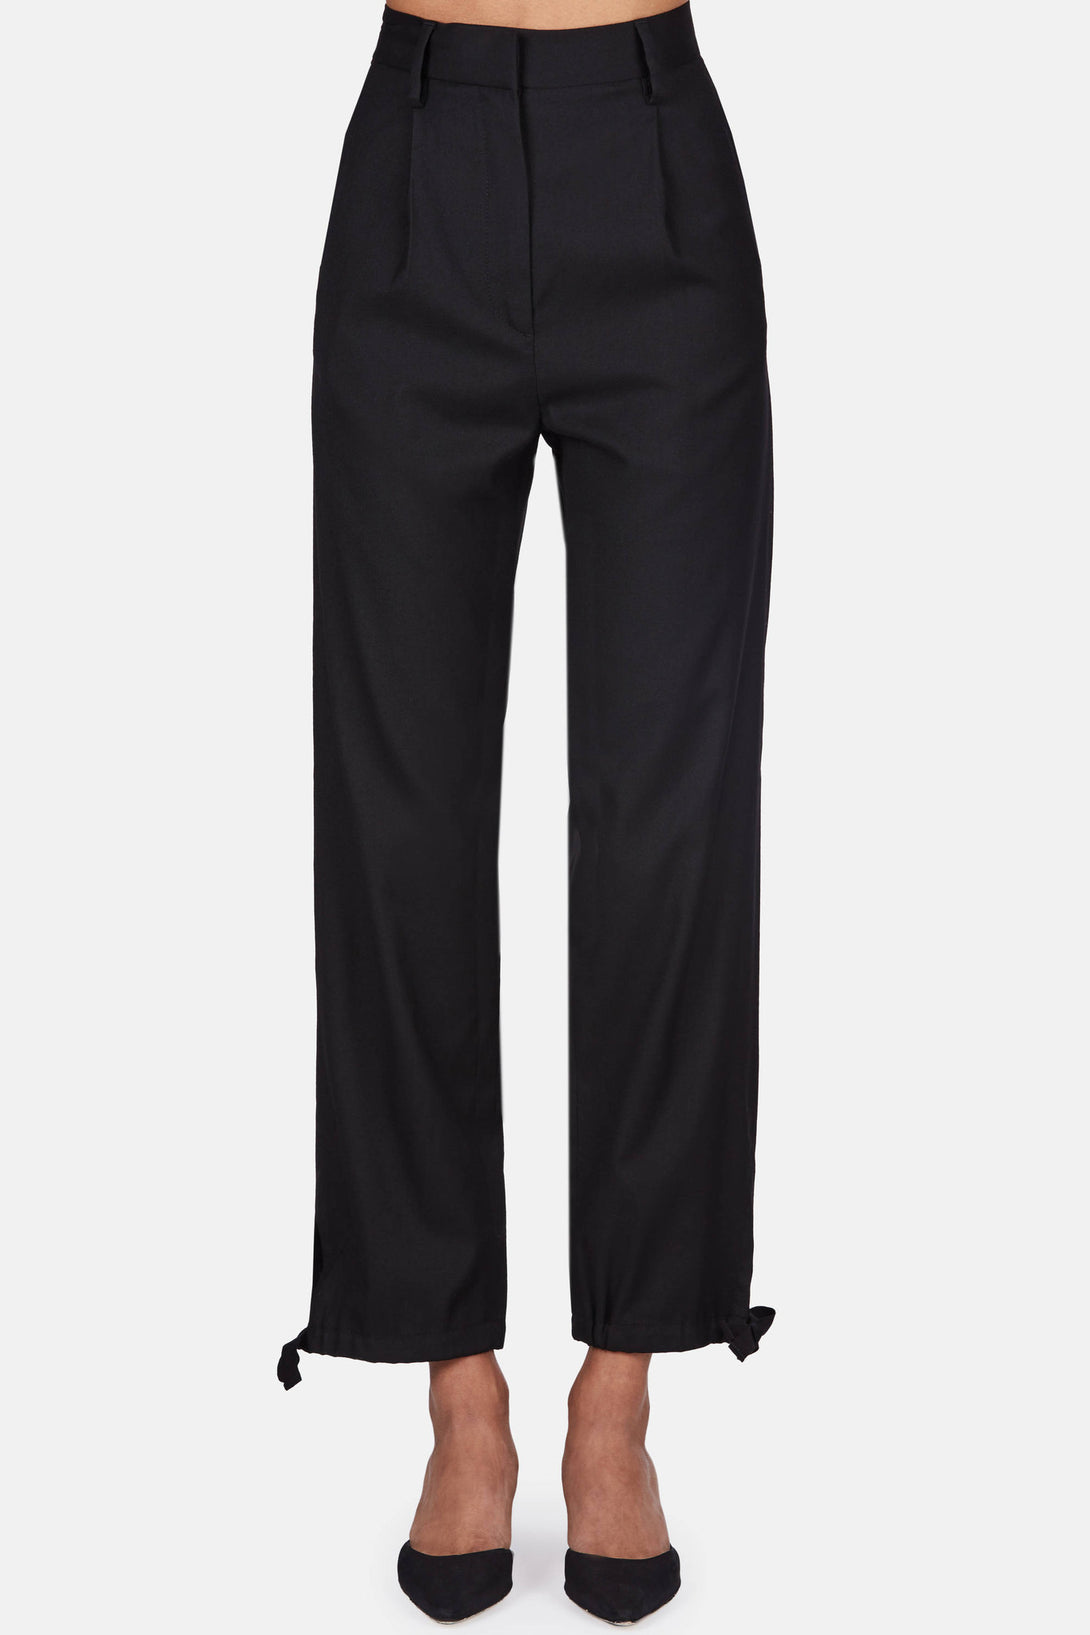 Bottom Tie Trouser - Black